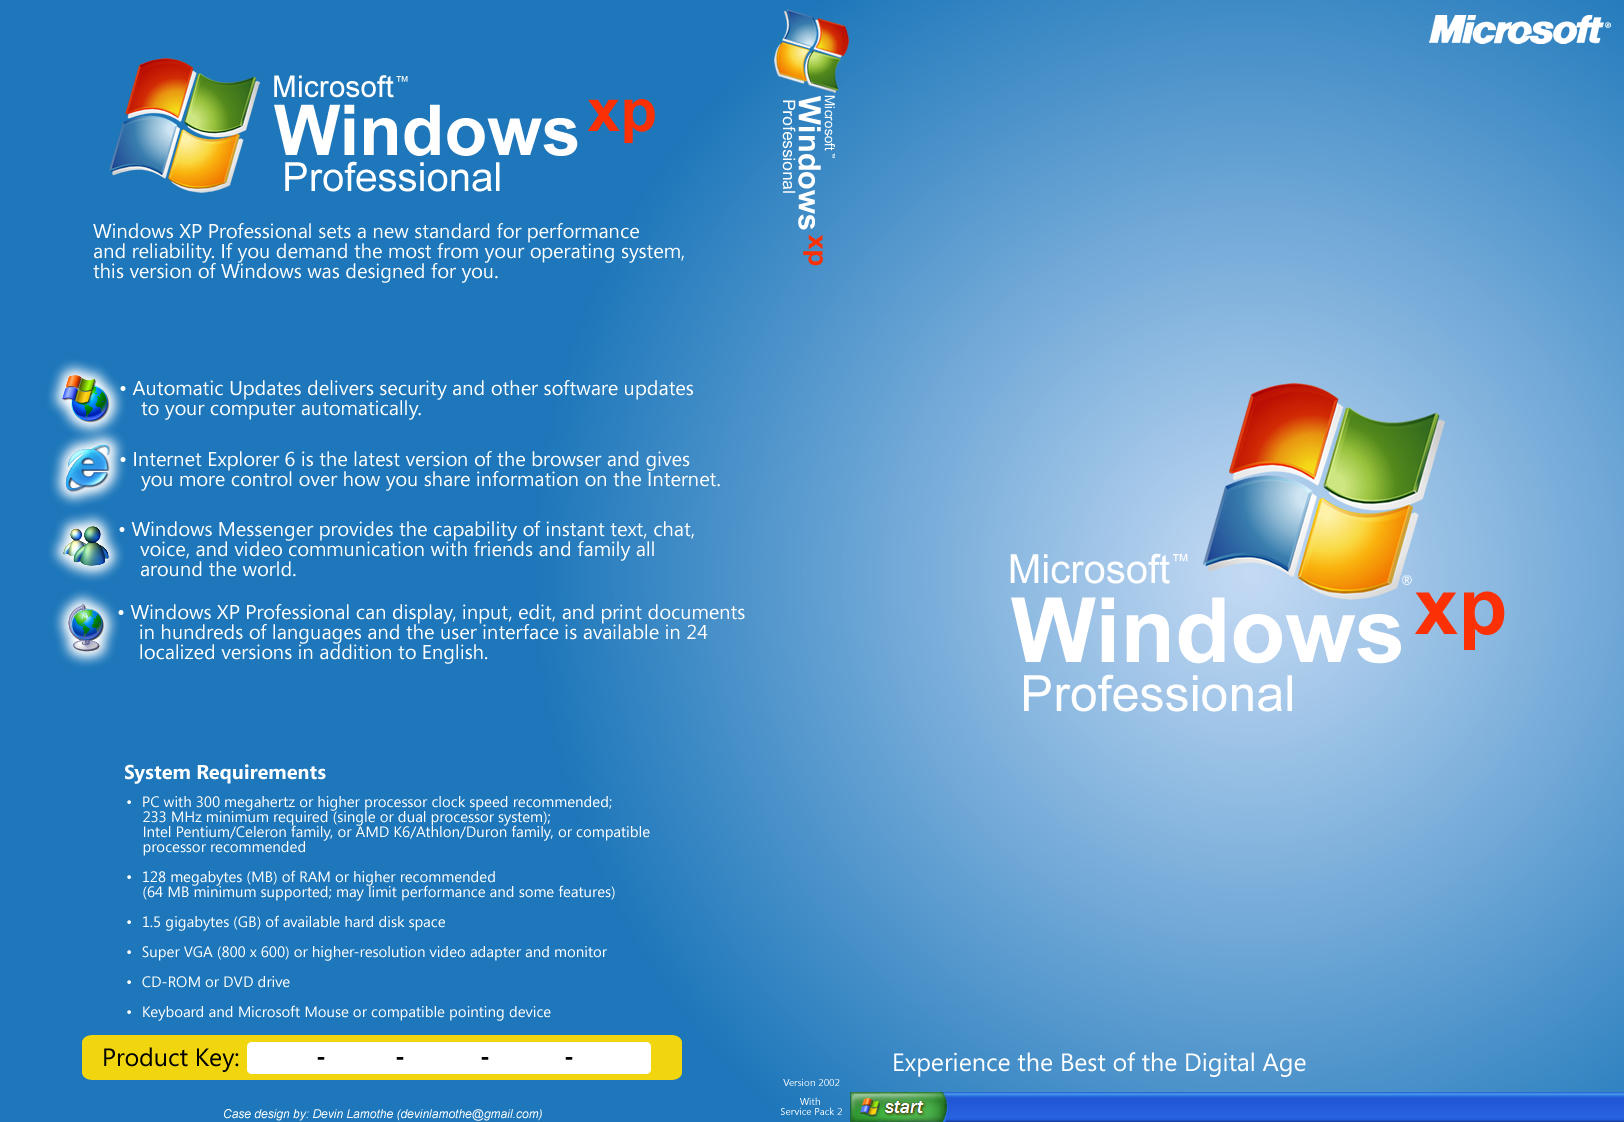 http://fc03.deviantart.com/fs7/i/2005/205/a/7/Windows_XP_Professional_by_devinlamothe.jpg